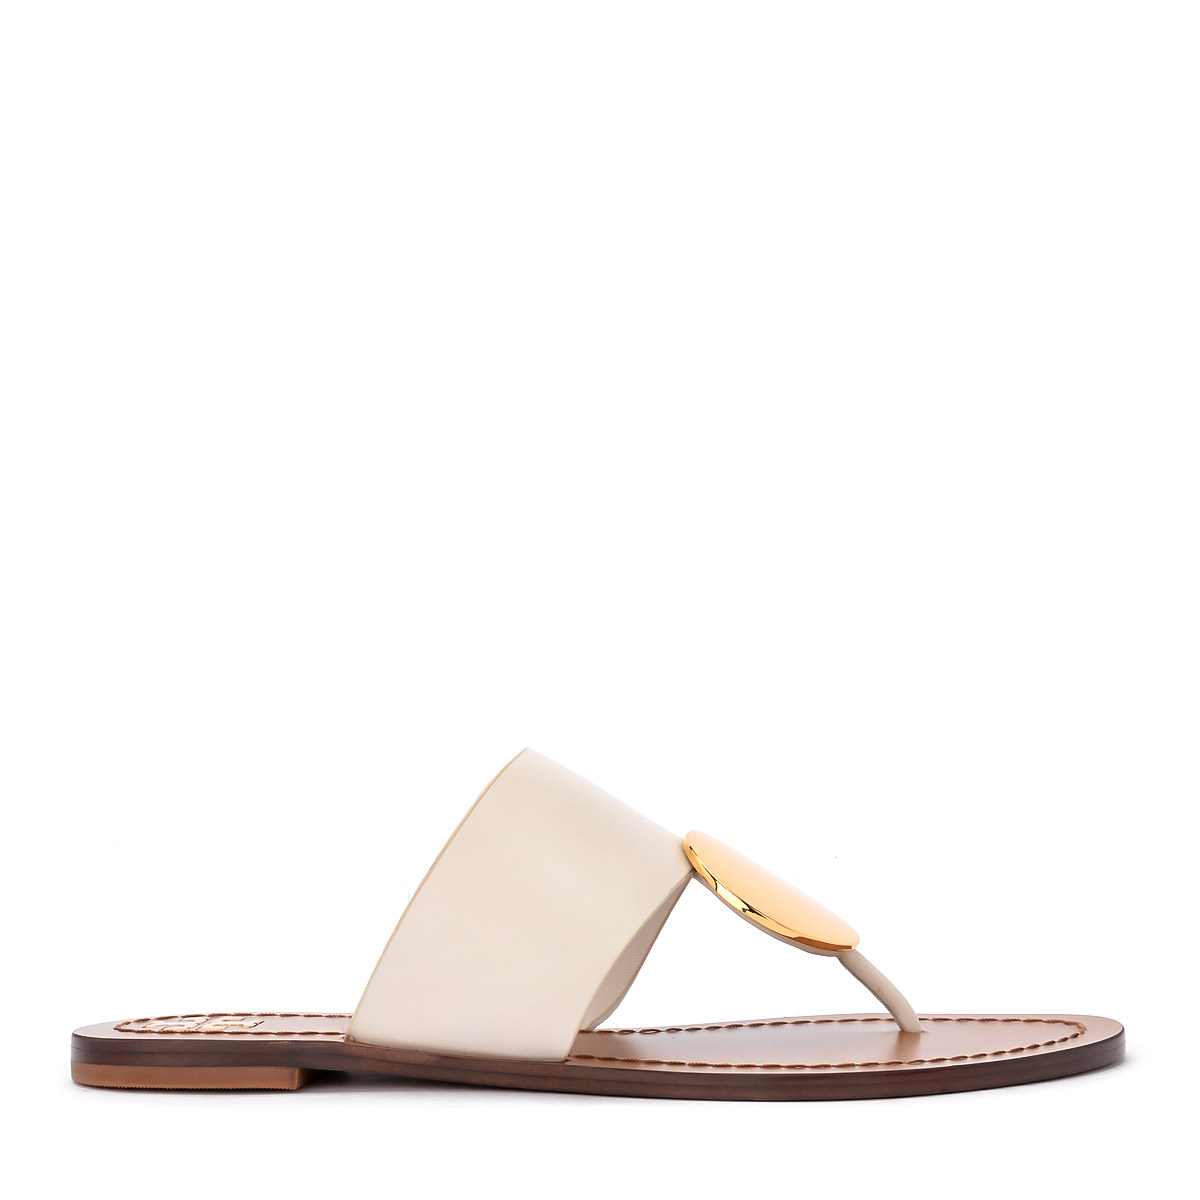 Sandalo Tory Burch Patos in pelle avorio